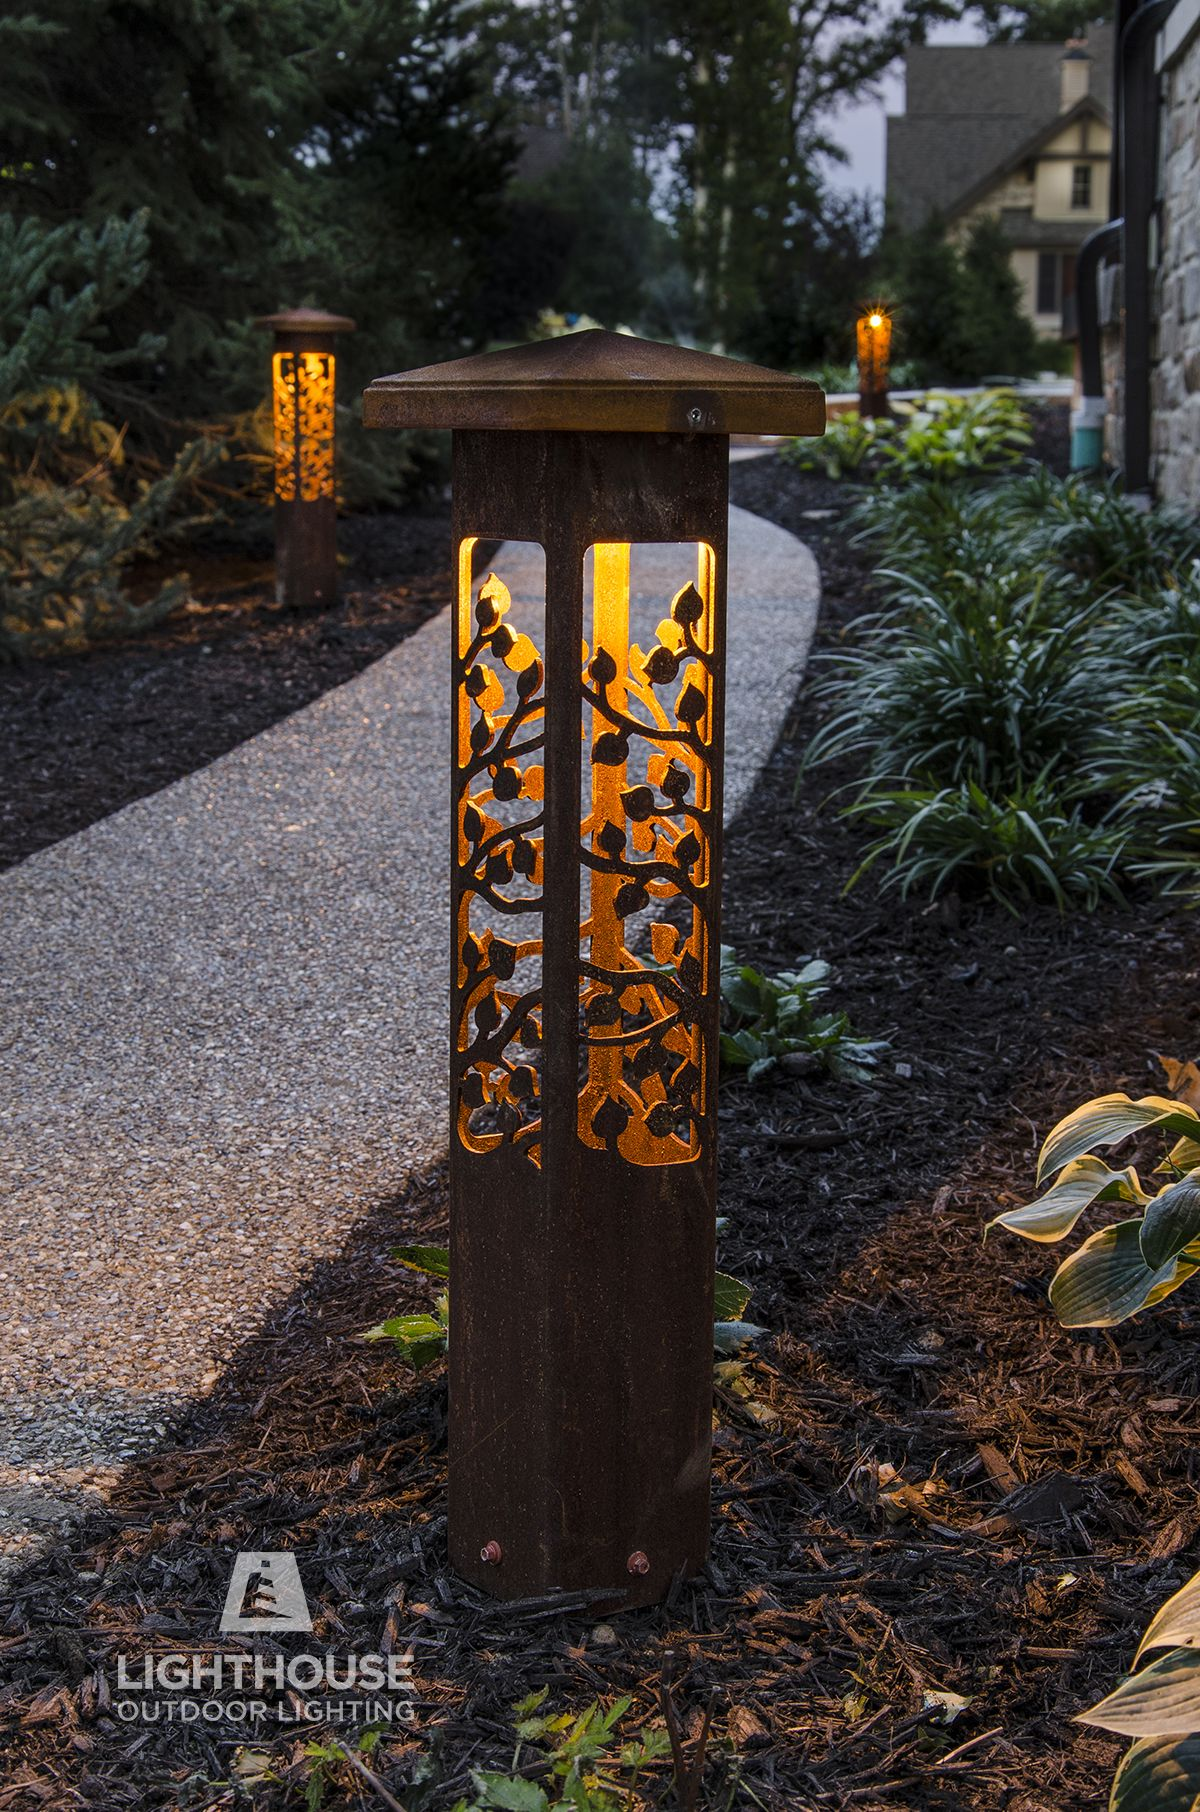 Landscape Lighting Lighthouse Outdoor Lighting Indianapolis In